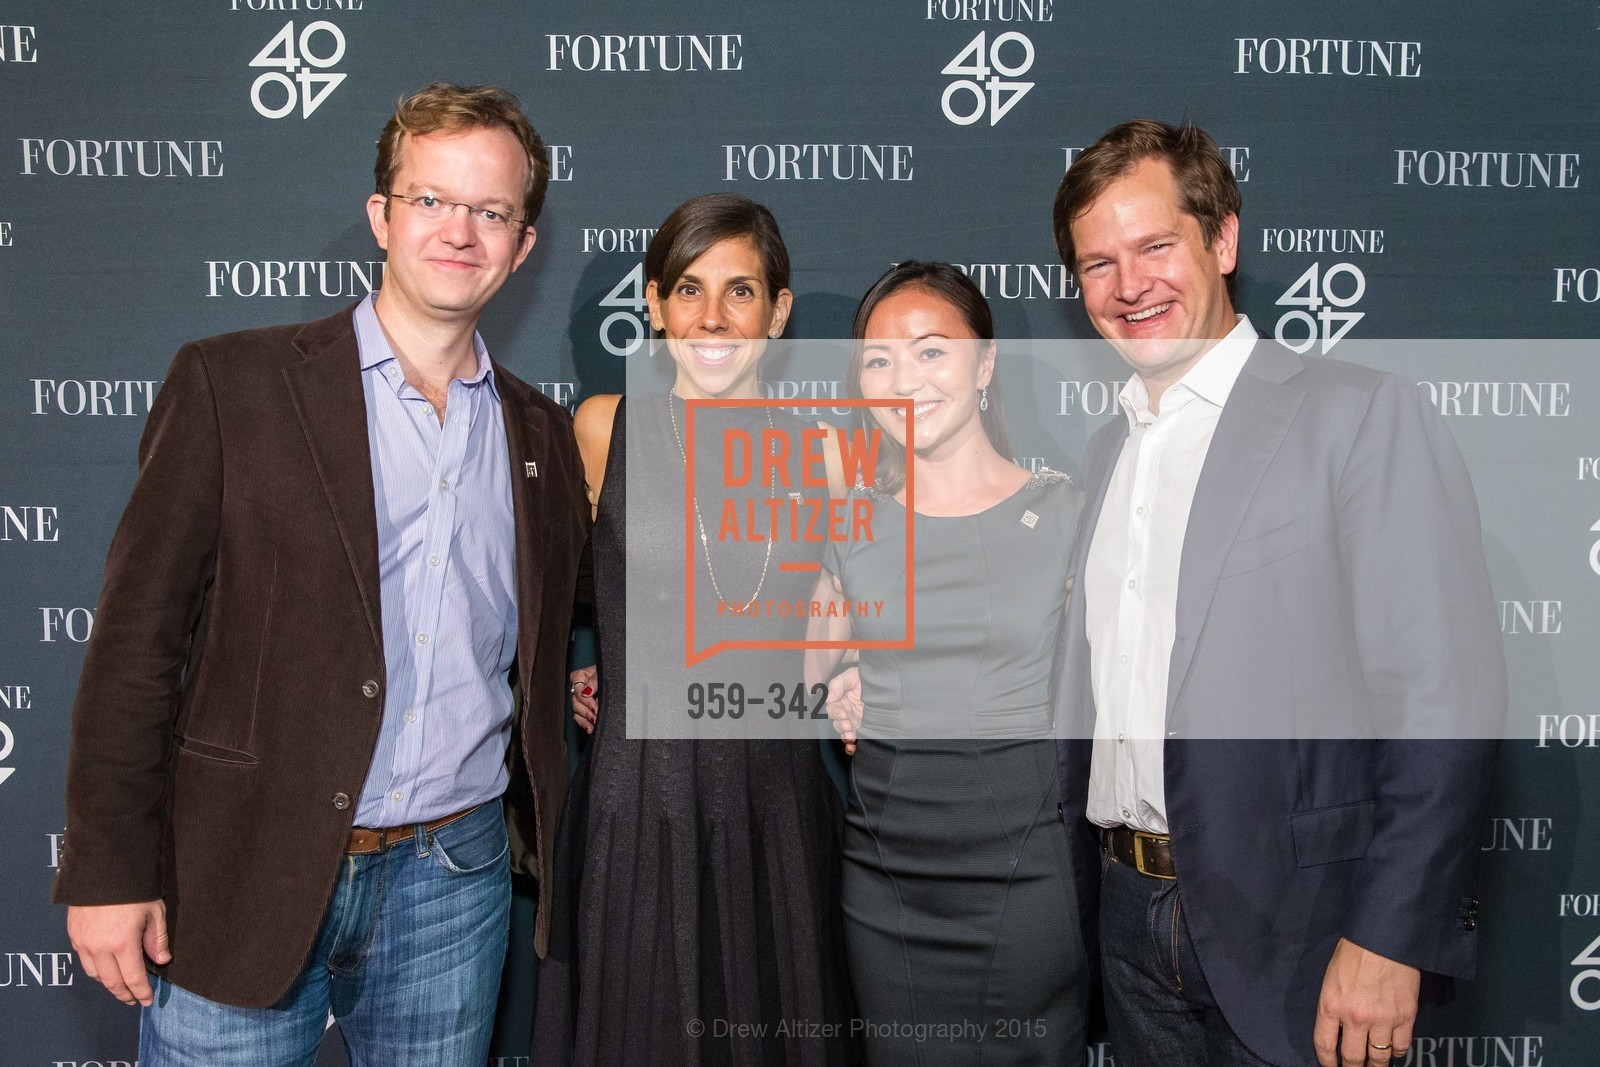 Will Ackerly, Melanie Whelan, Karen Fang, John Ackerly, Fortune's 40 Under 40 Party, GitHub HQ. 88 Colin P Kelly Jr St, October 7th, 2015,Drew Altizer, Drew Altizer Photography, full-service agency, private events, San Francisco photographer, photographer california